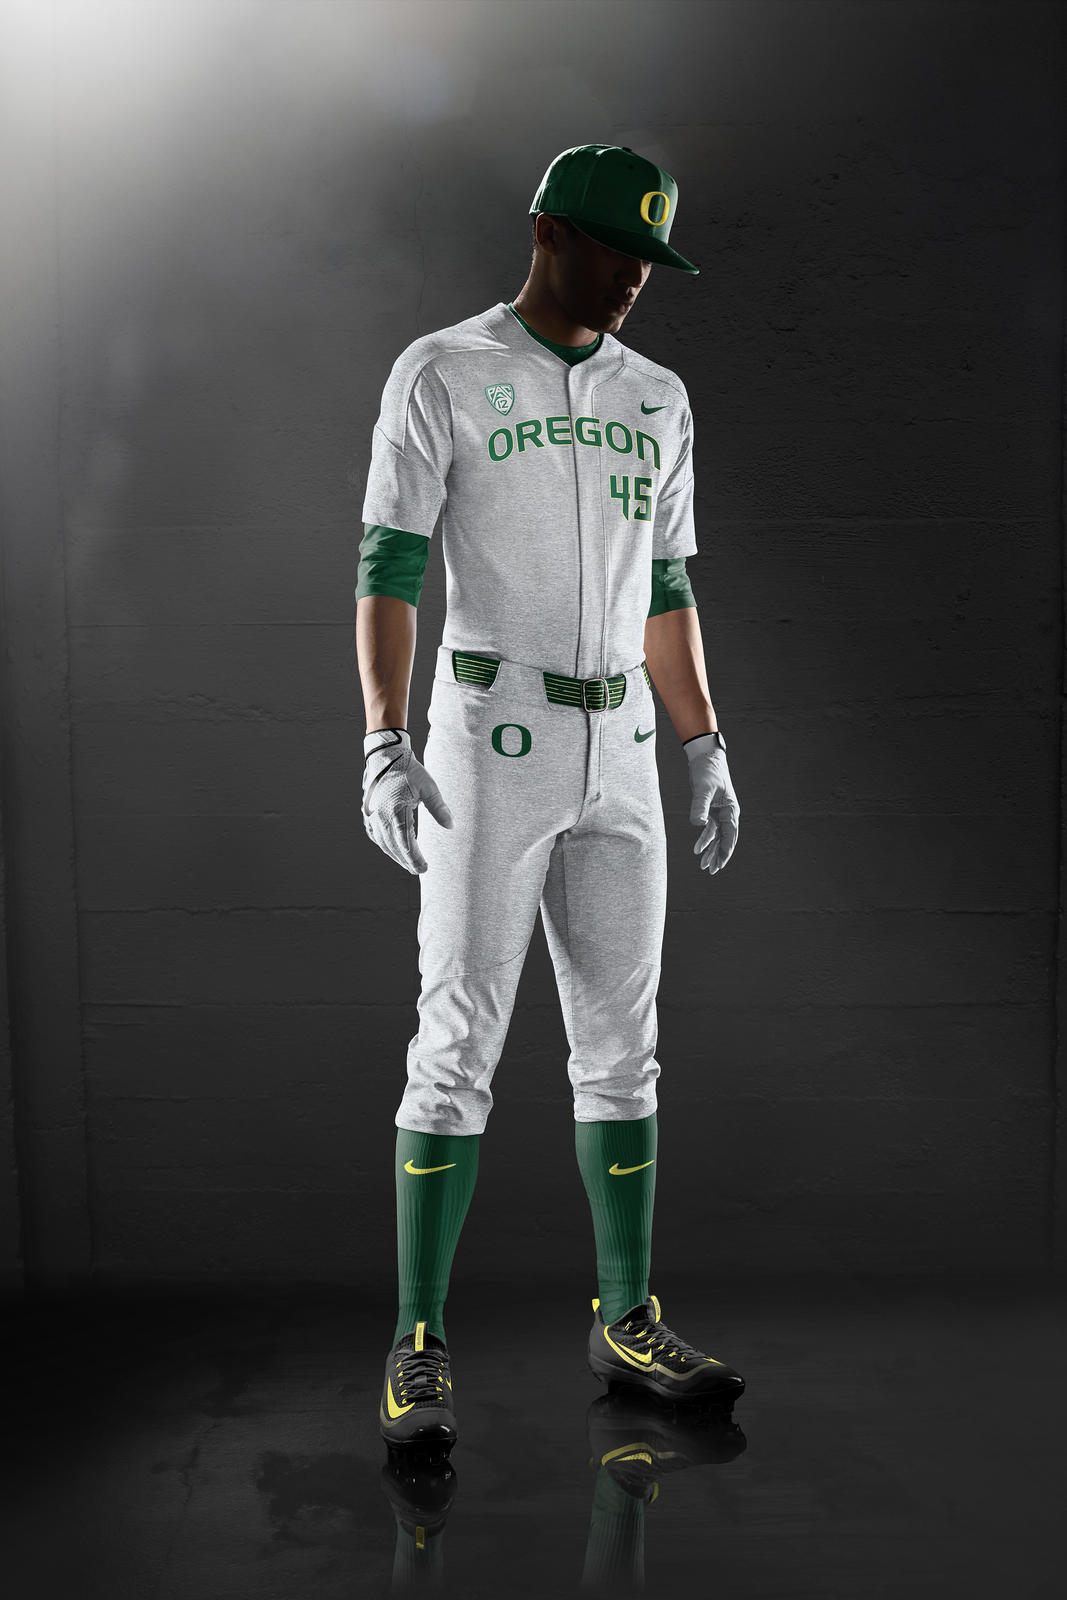 Oregon Ducks Baseball Uniforms